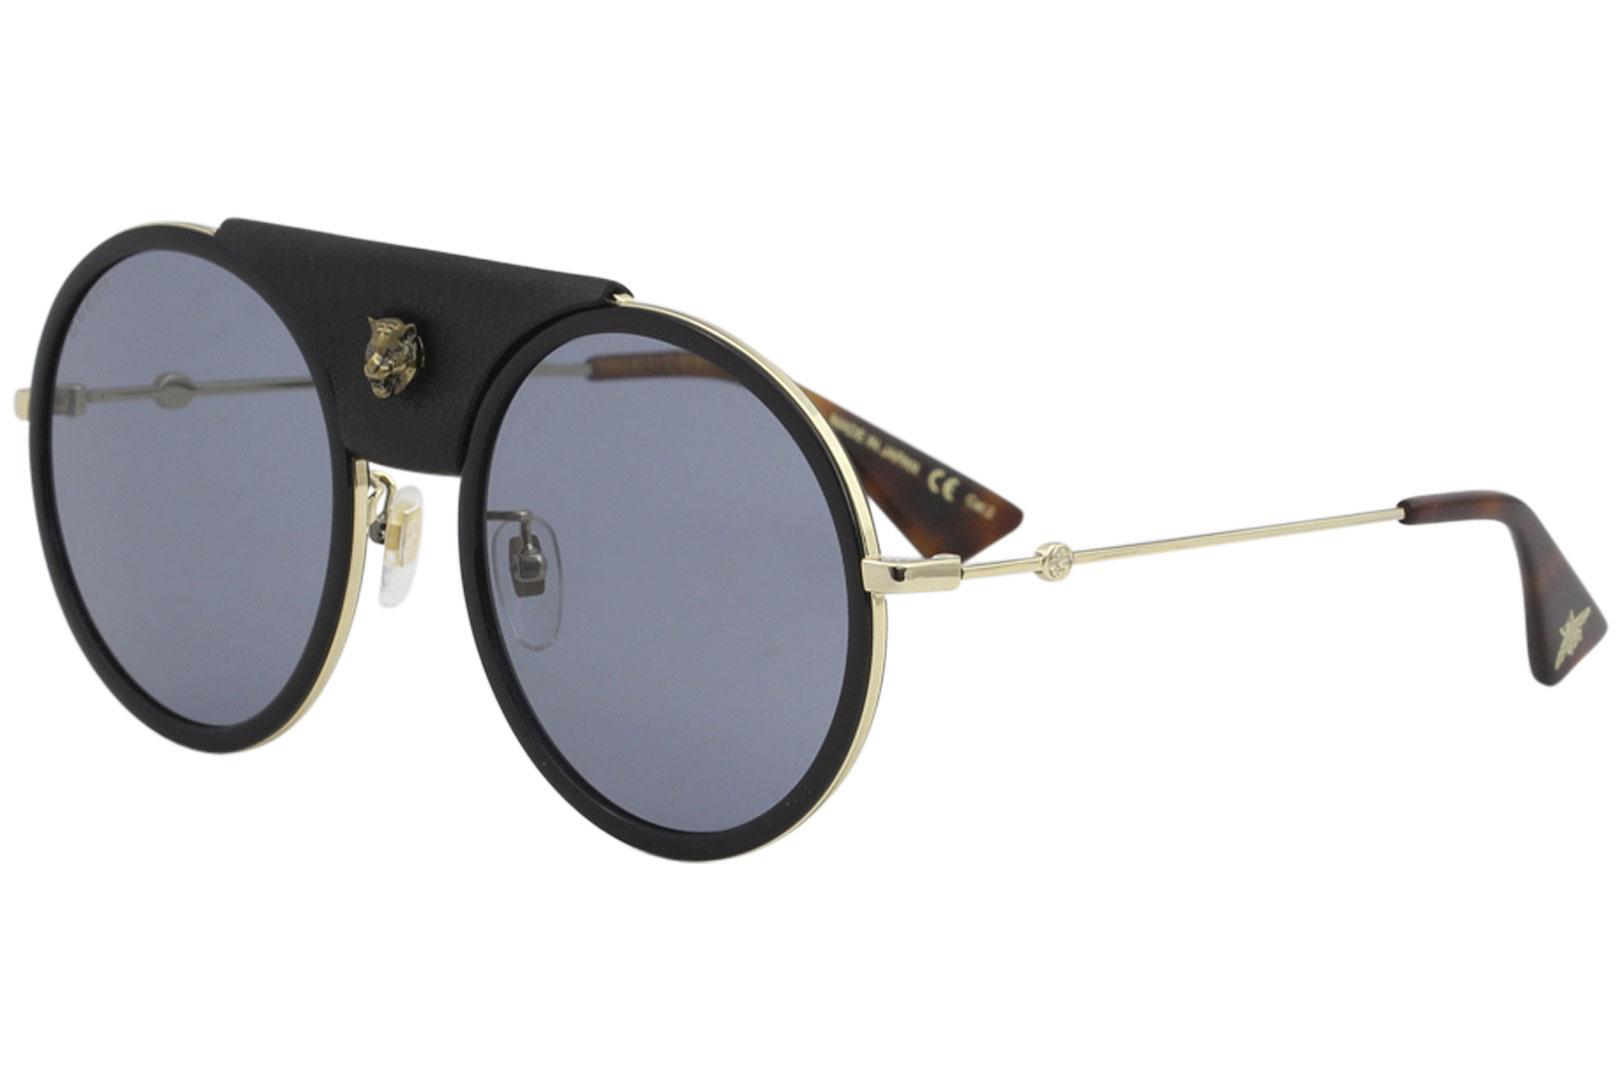 4436f41604 Details about Gucci Women s GG0061S GG 0061 S 016 Gold Black Round Leather  Sunglasses 56mm